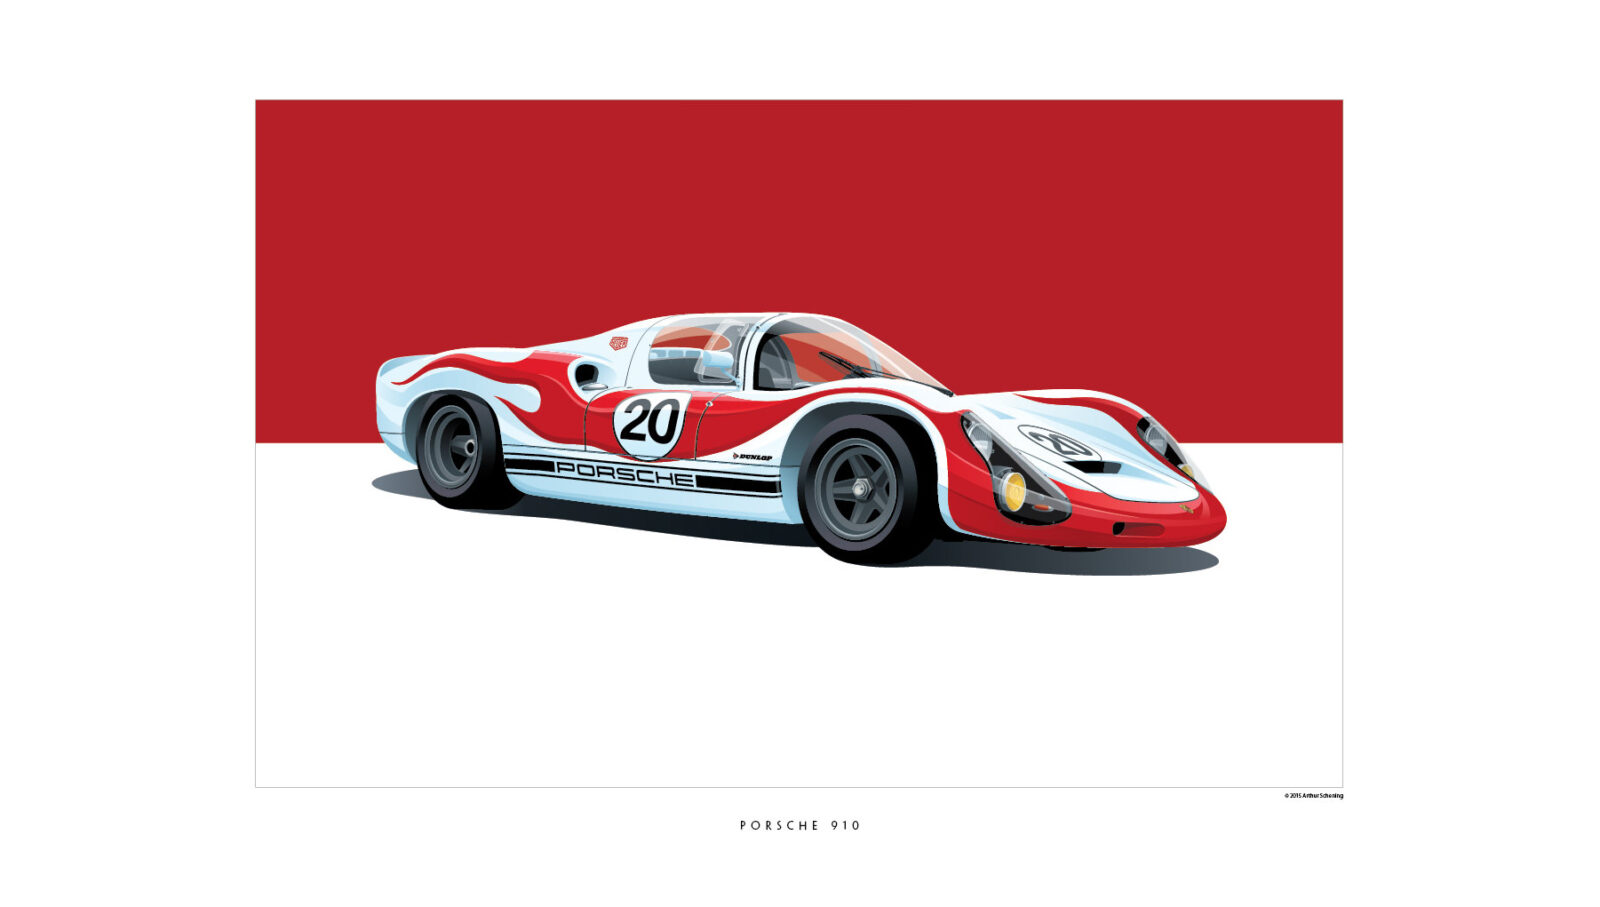 Porsche 910 1600x907 - Iconic Racing Car Posters by Arthur Schening